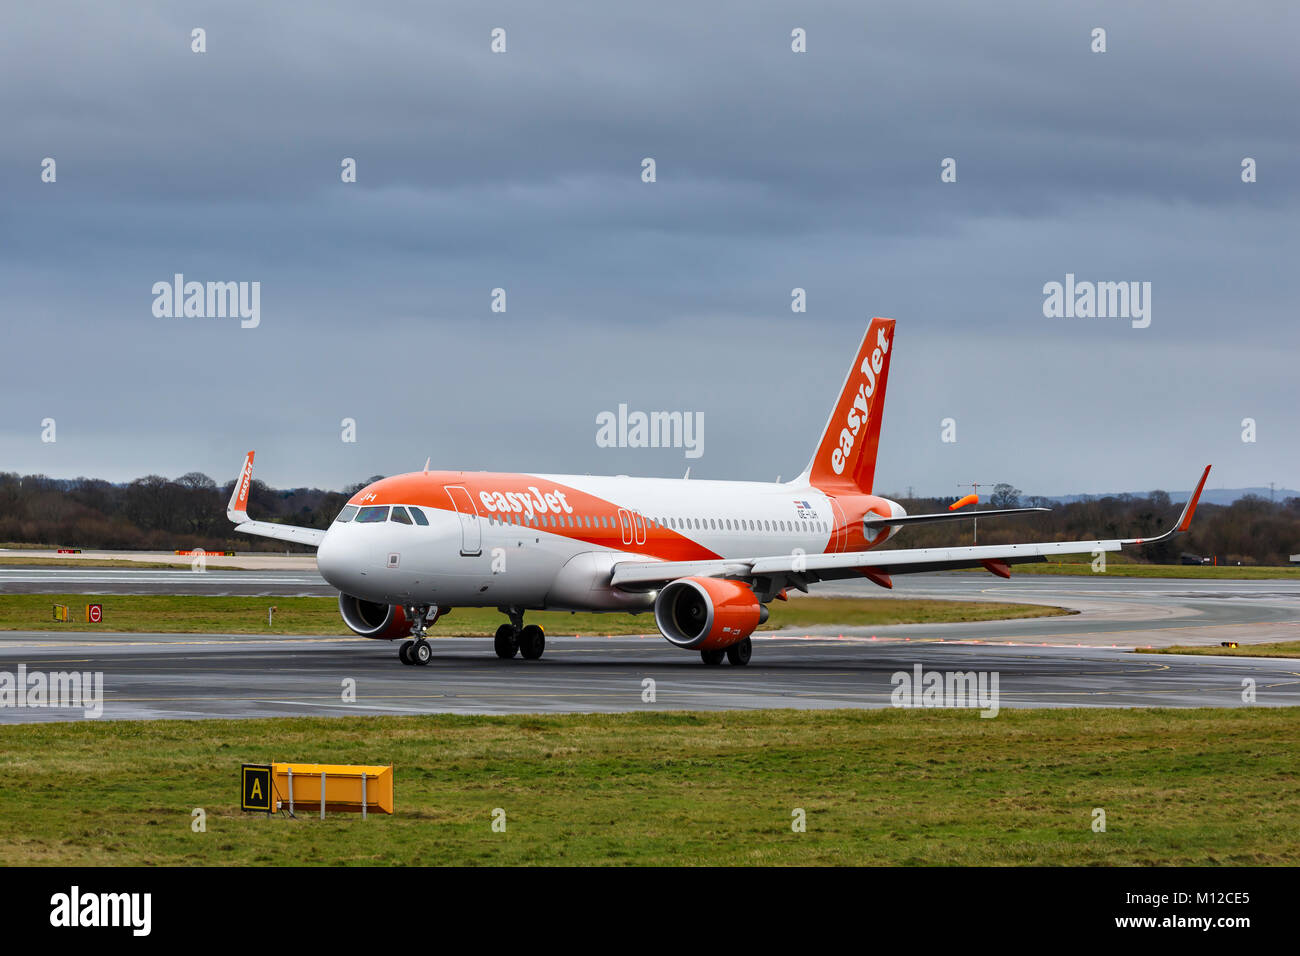 Airbus A320-214, registration OE-IJH, operated by EasyJet, taxiing in foggy conditions at Manchester International - Stock Image